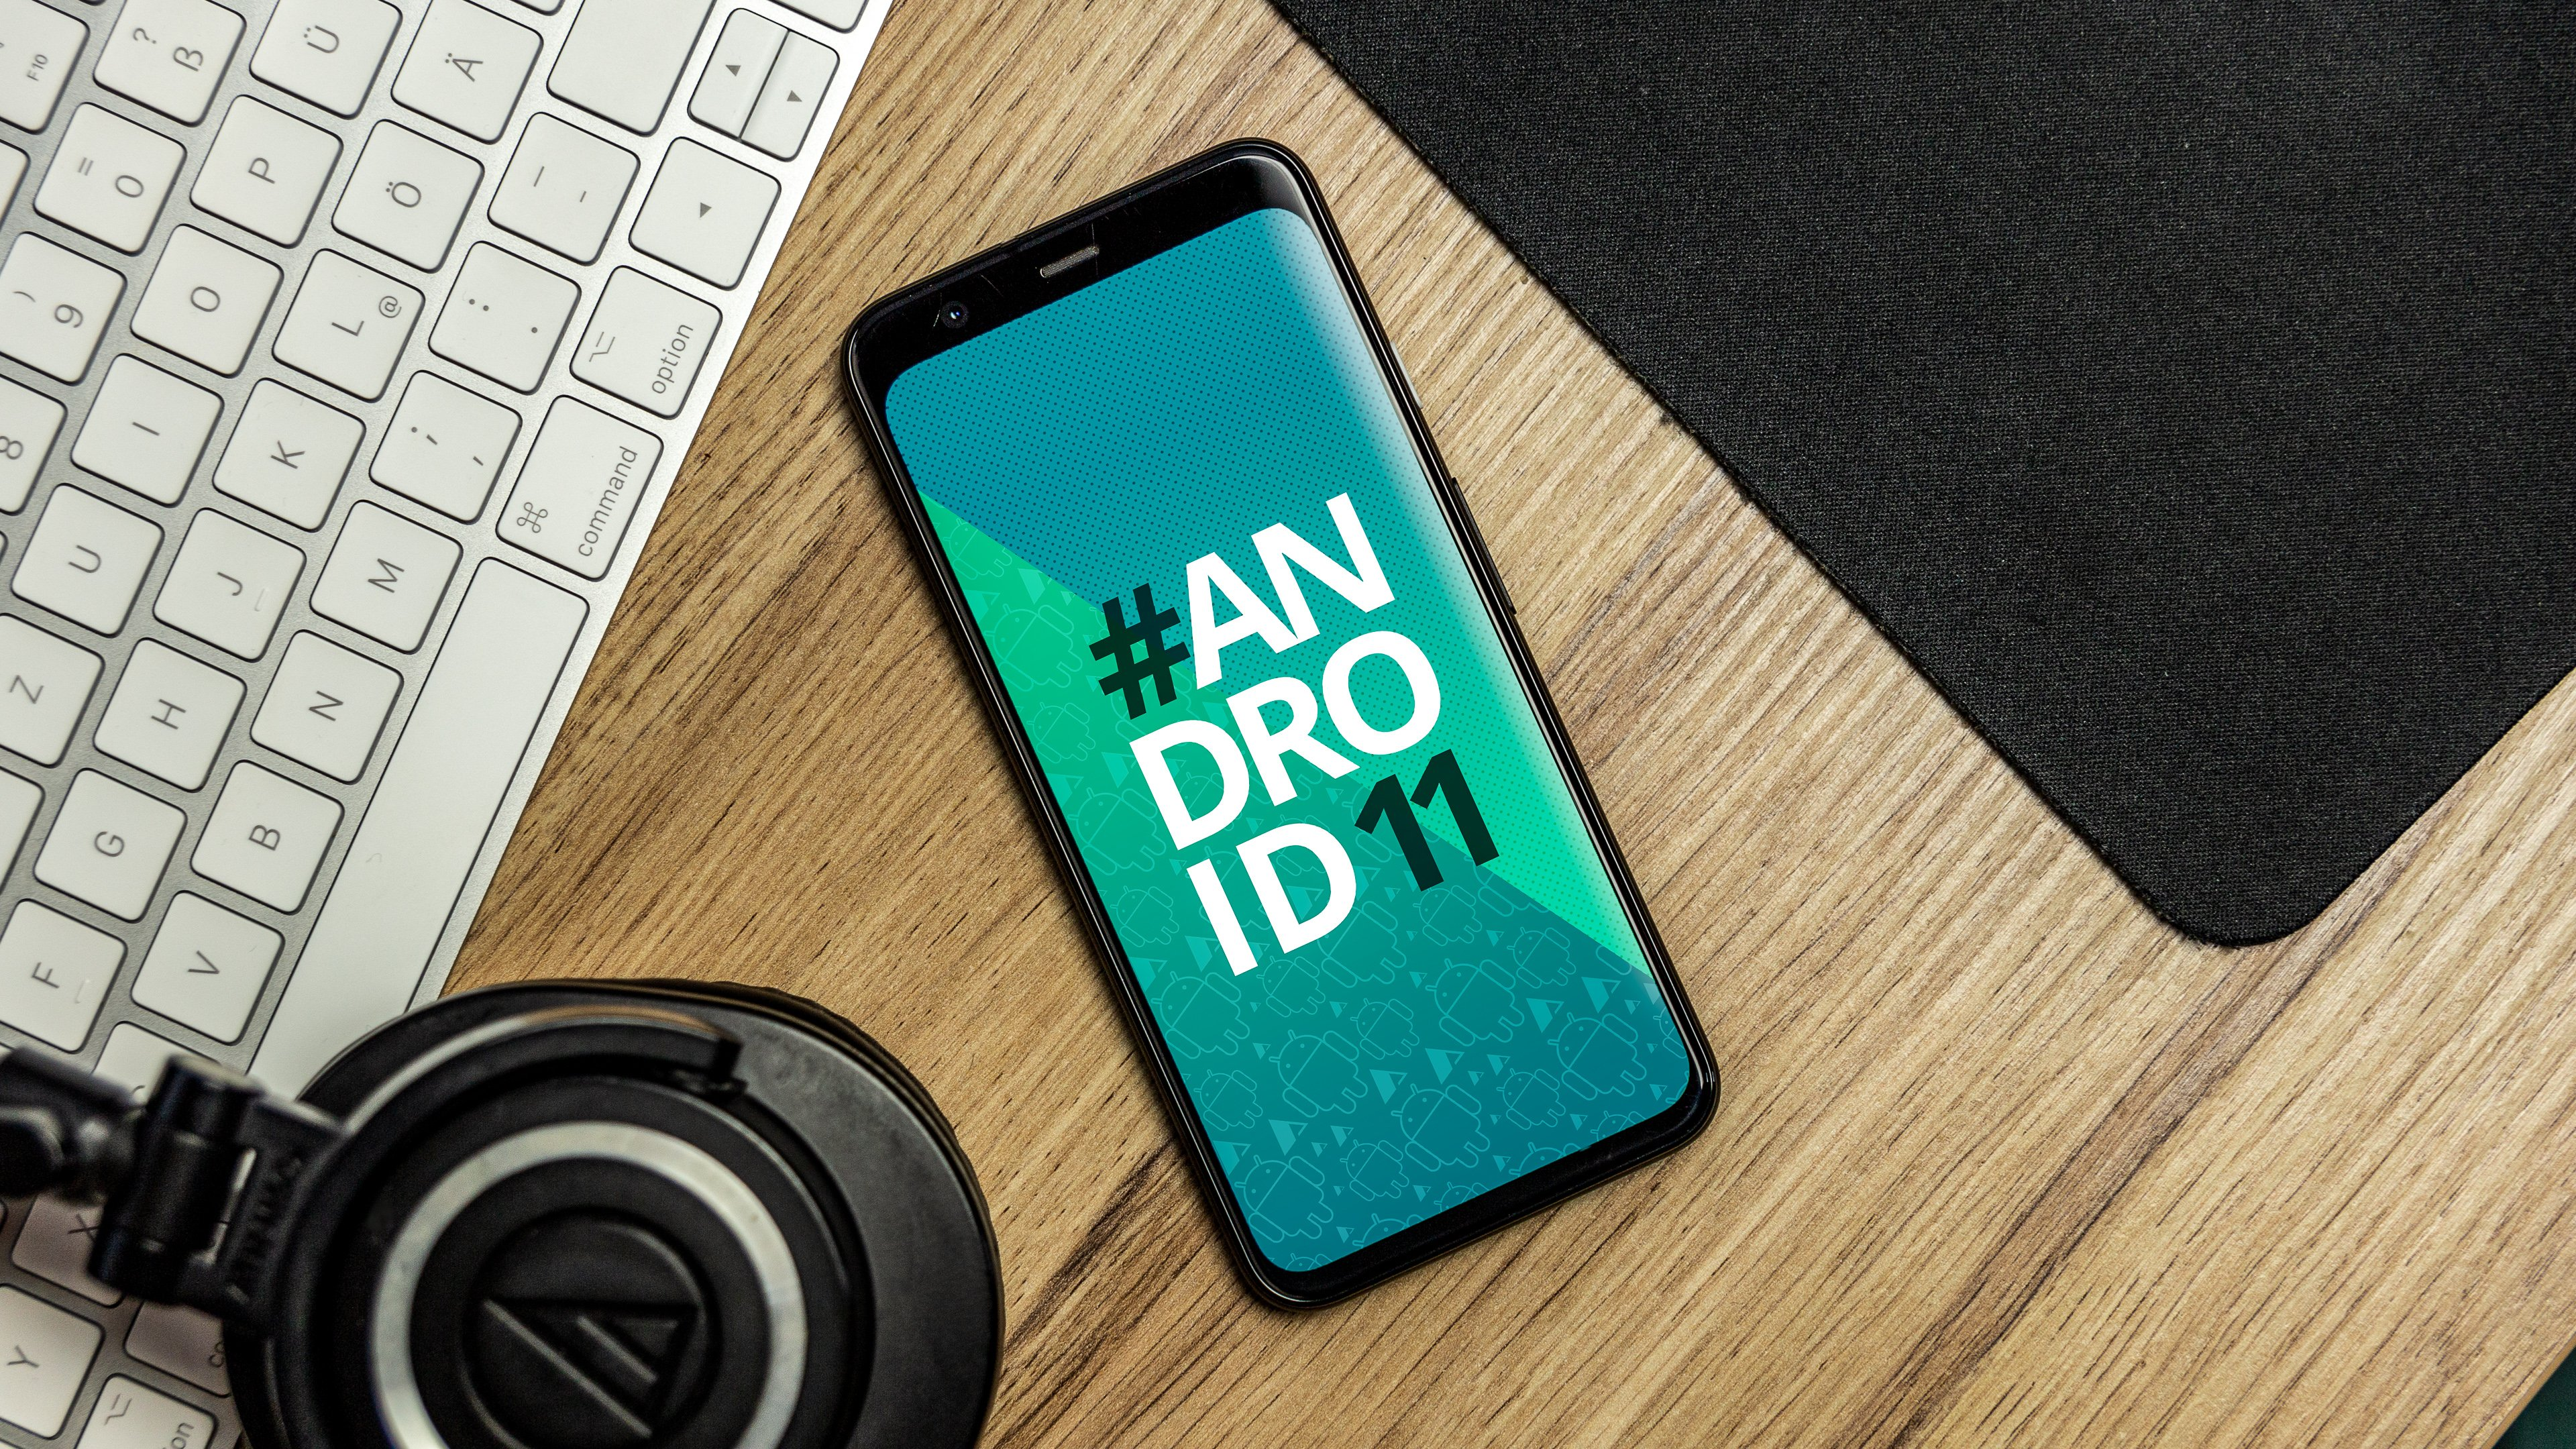 The first developer preview of Android 11 has arrived | AndroidPIT